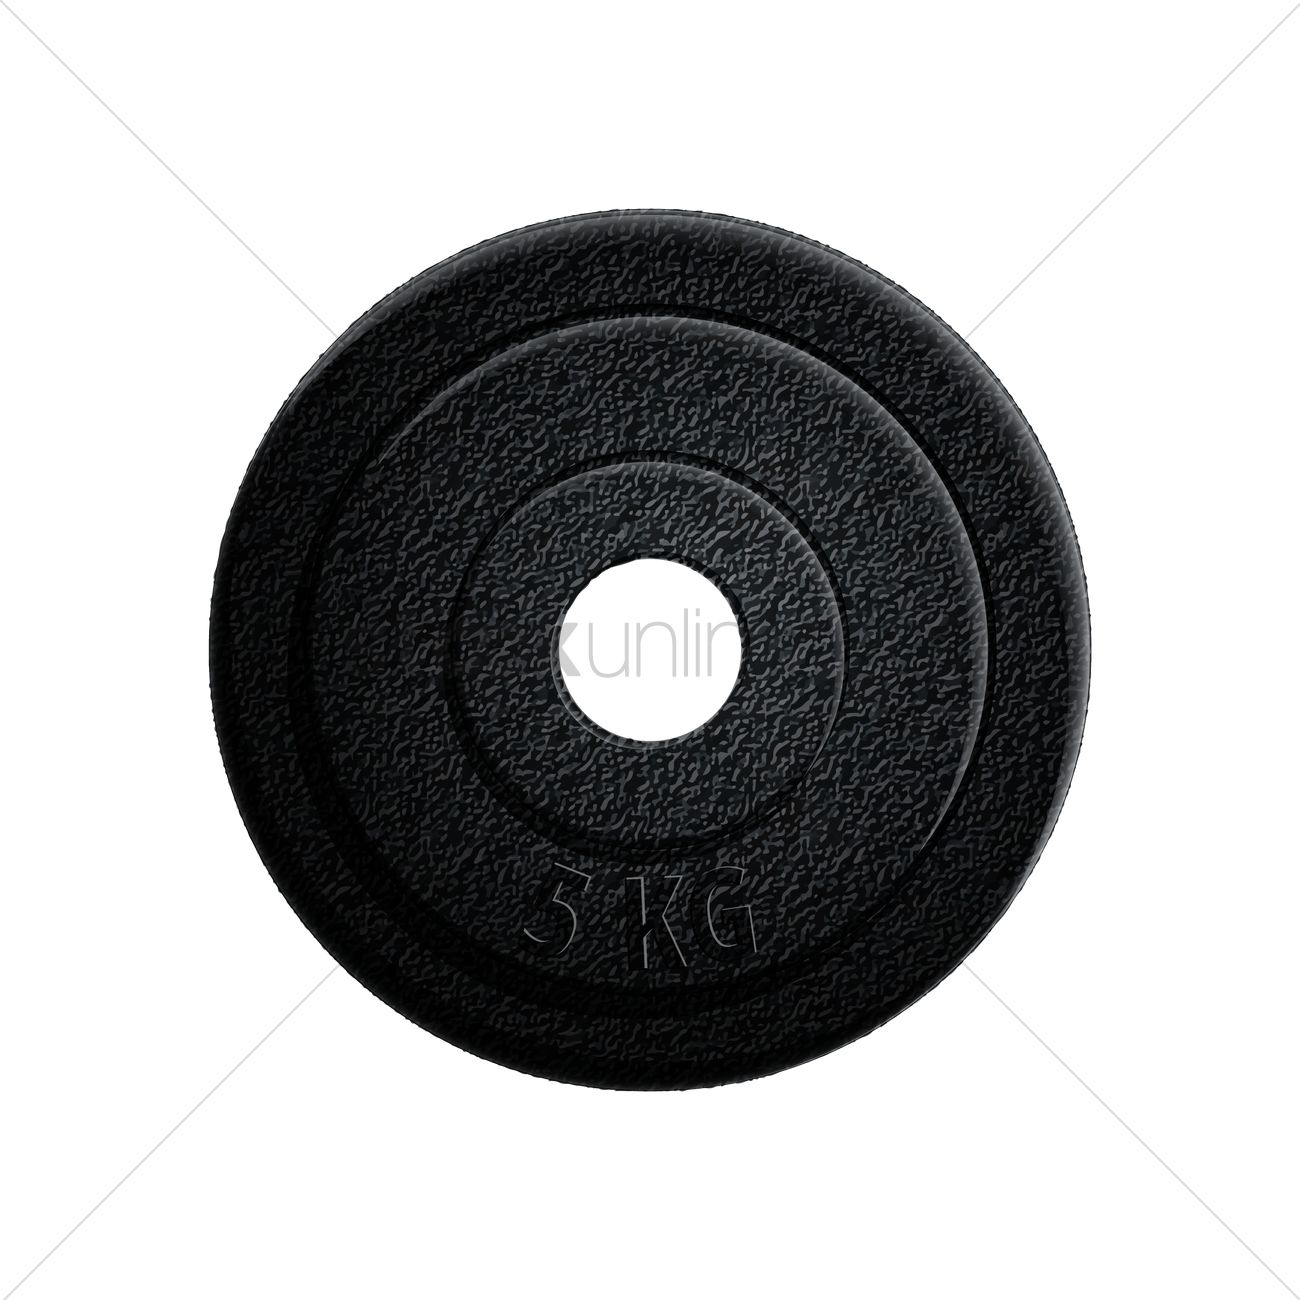 1300x1300 Weightlifting Plate Vector Image